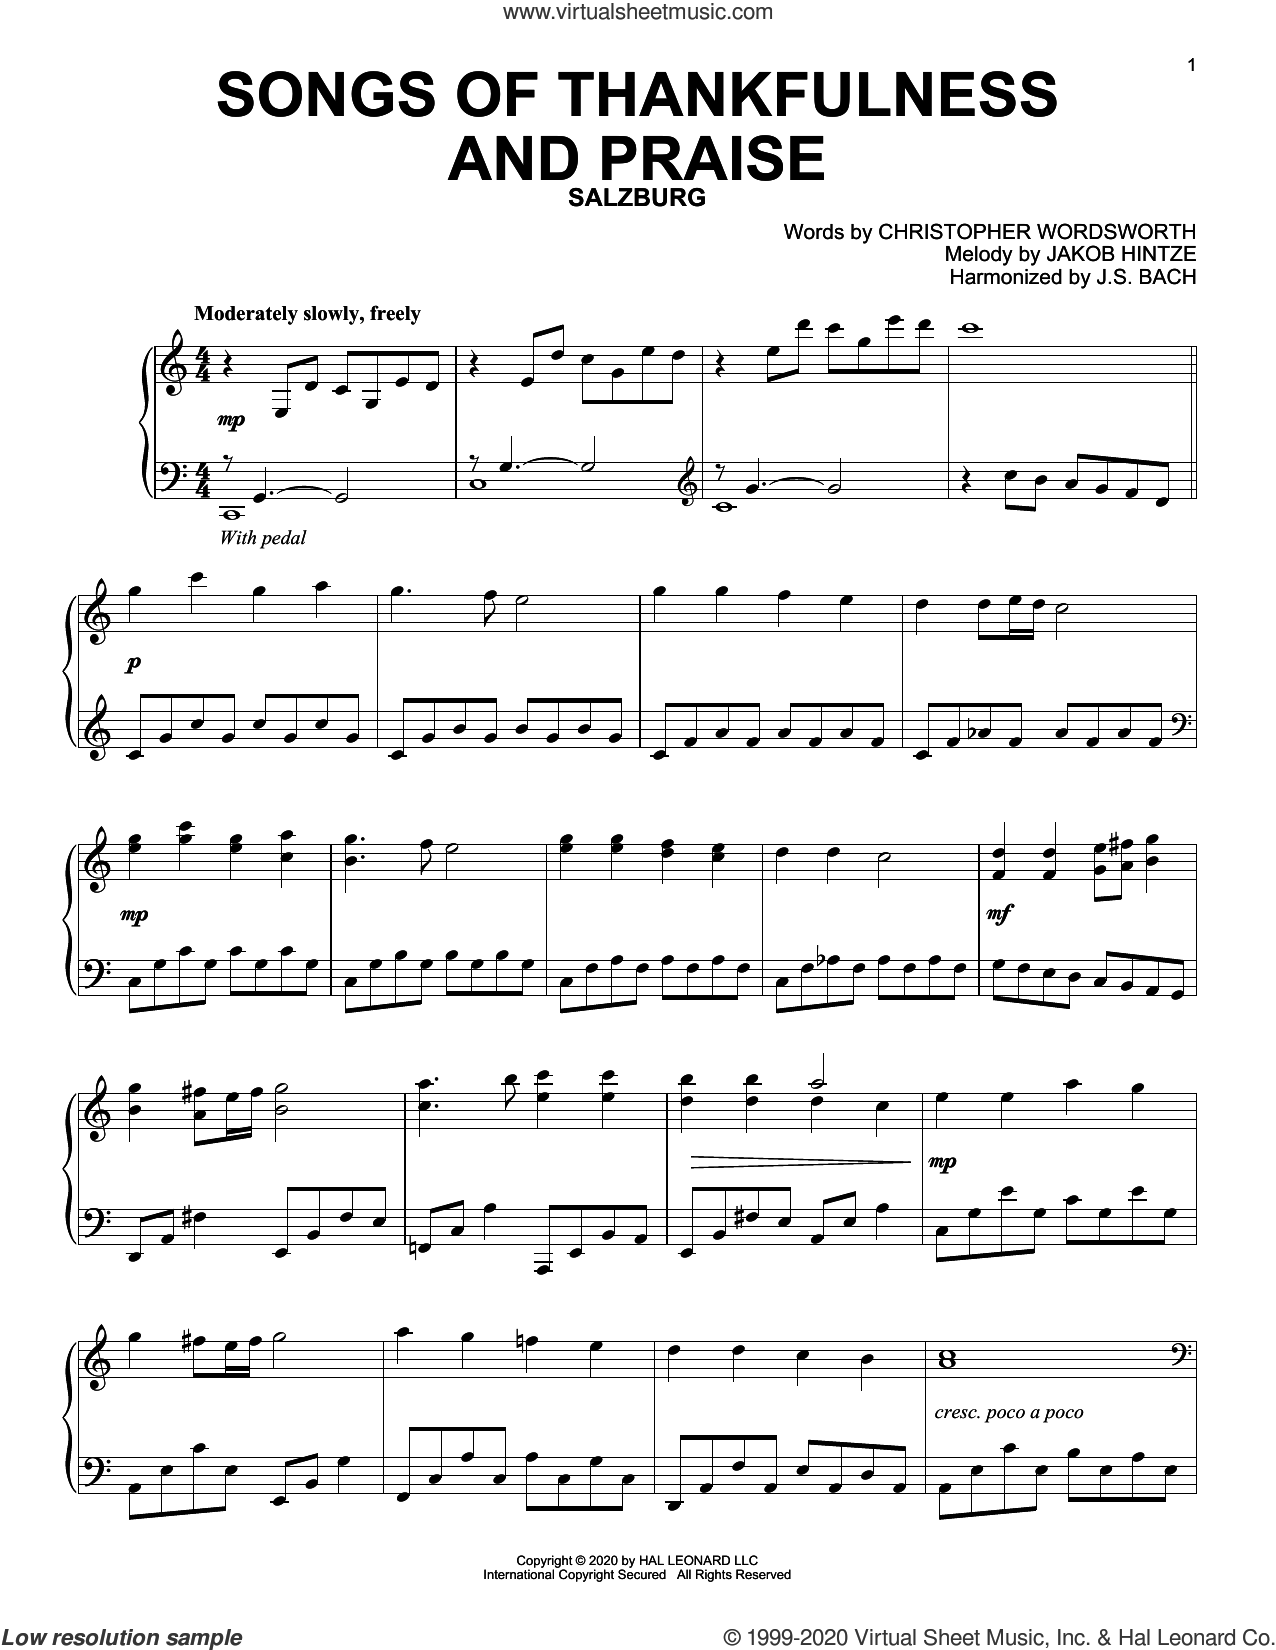 Songs Of Thankfulness And Praise sheet music for piano solo by Christopher Wordsworth, Christopher Wordsworth and Jakob Hintze, J.S. Bach (harm.) and Jakob Hintze, intermediate skill level